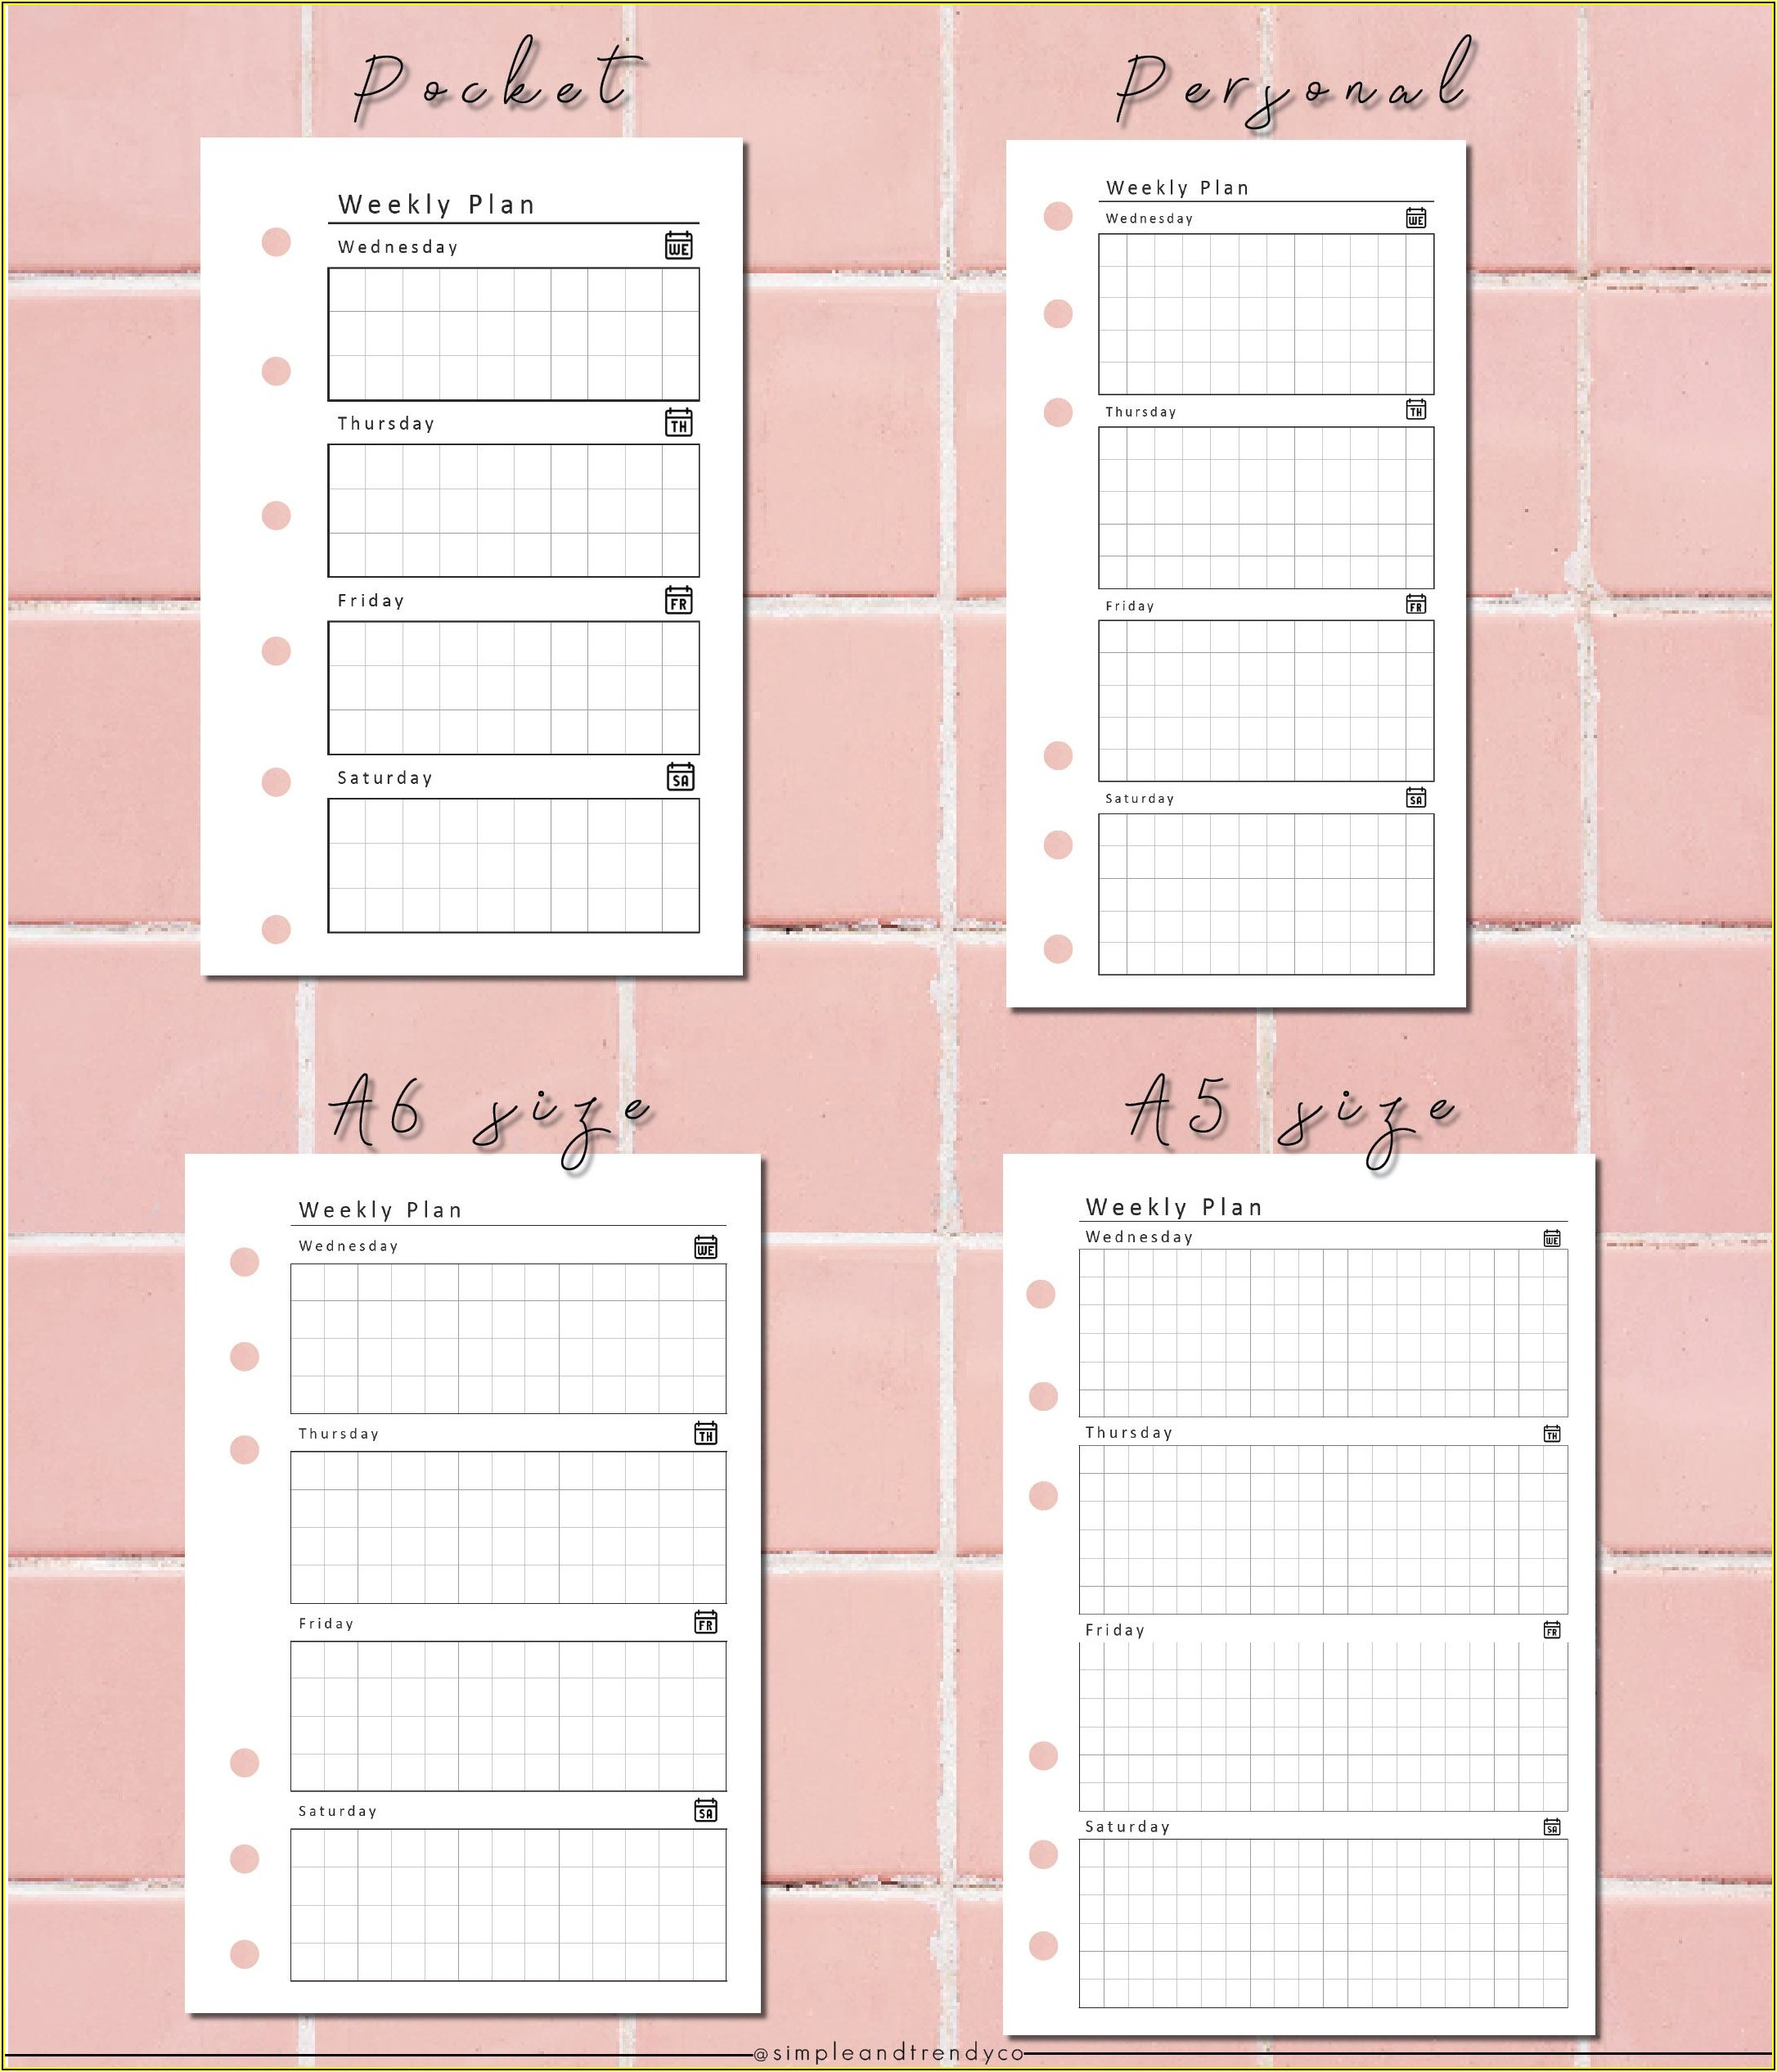 Pocket Schedule Template